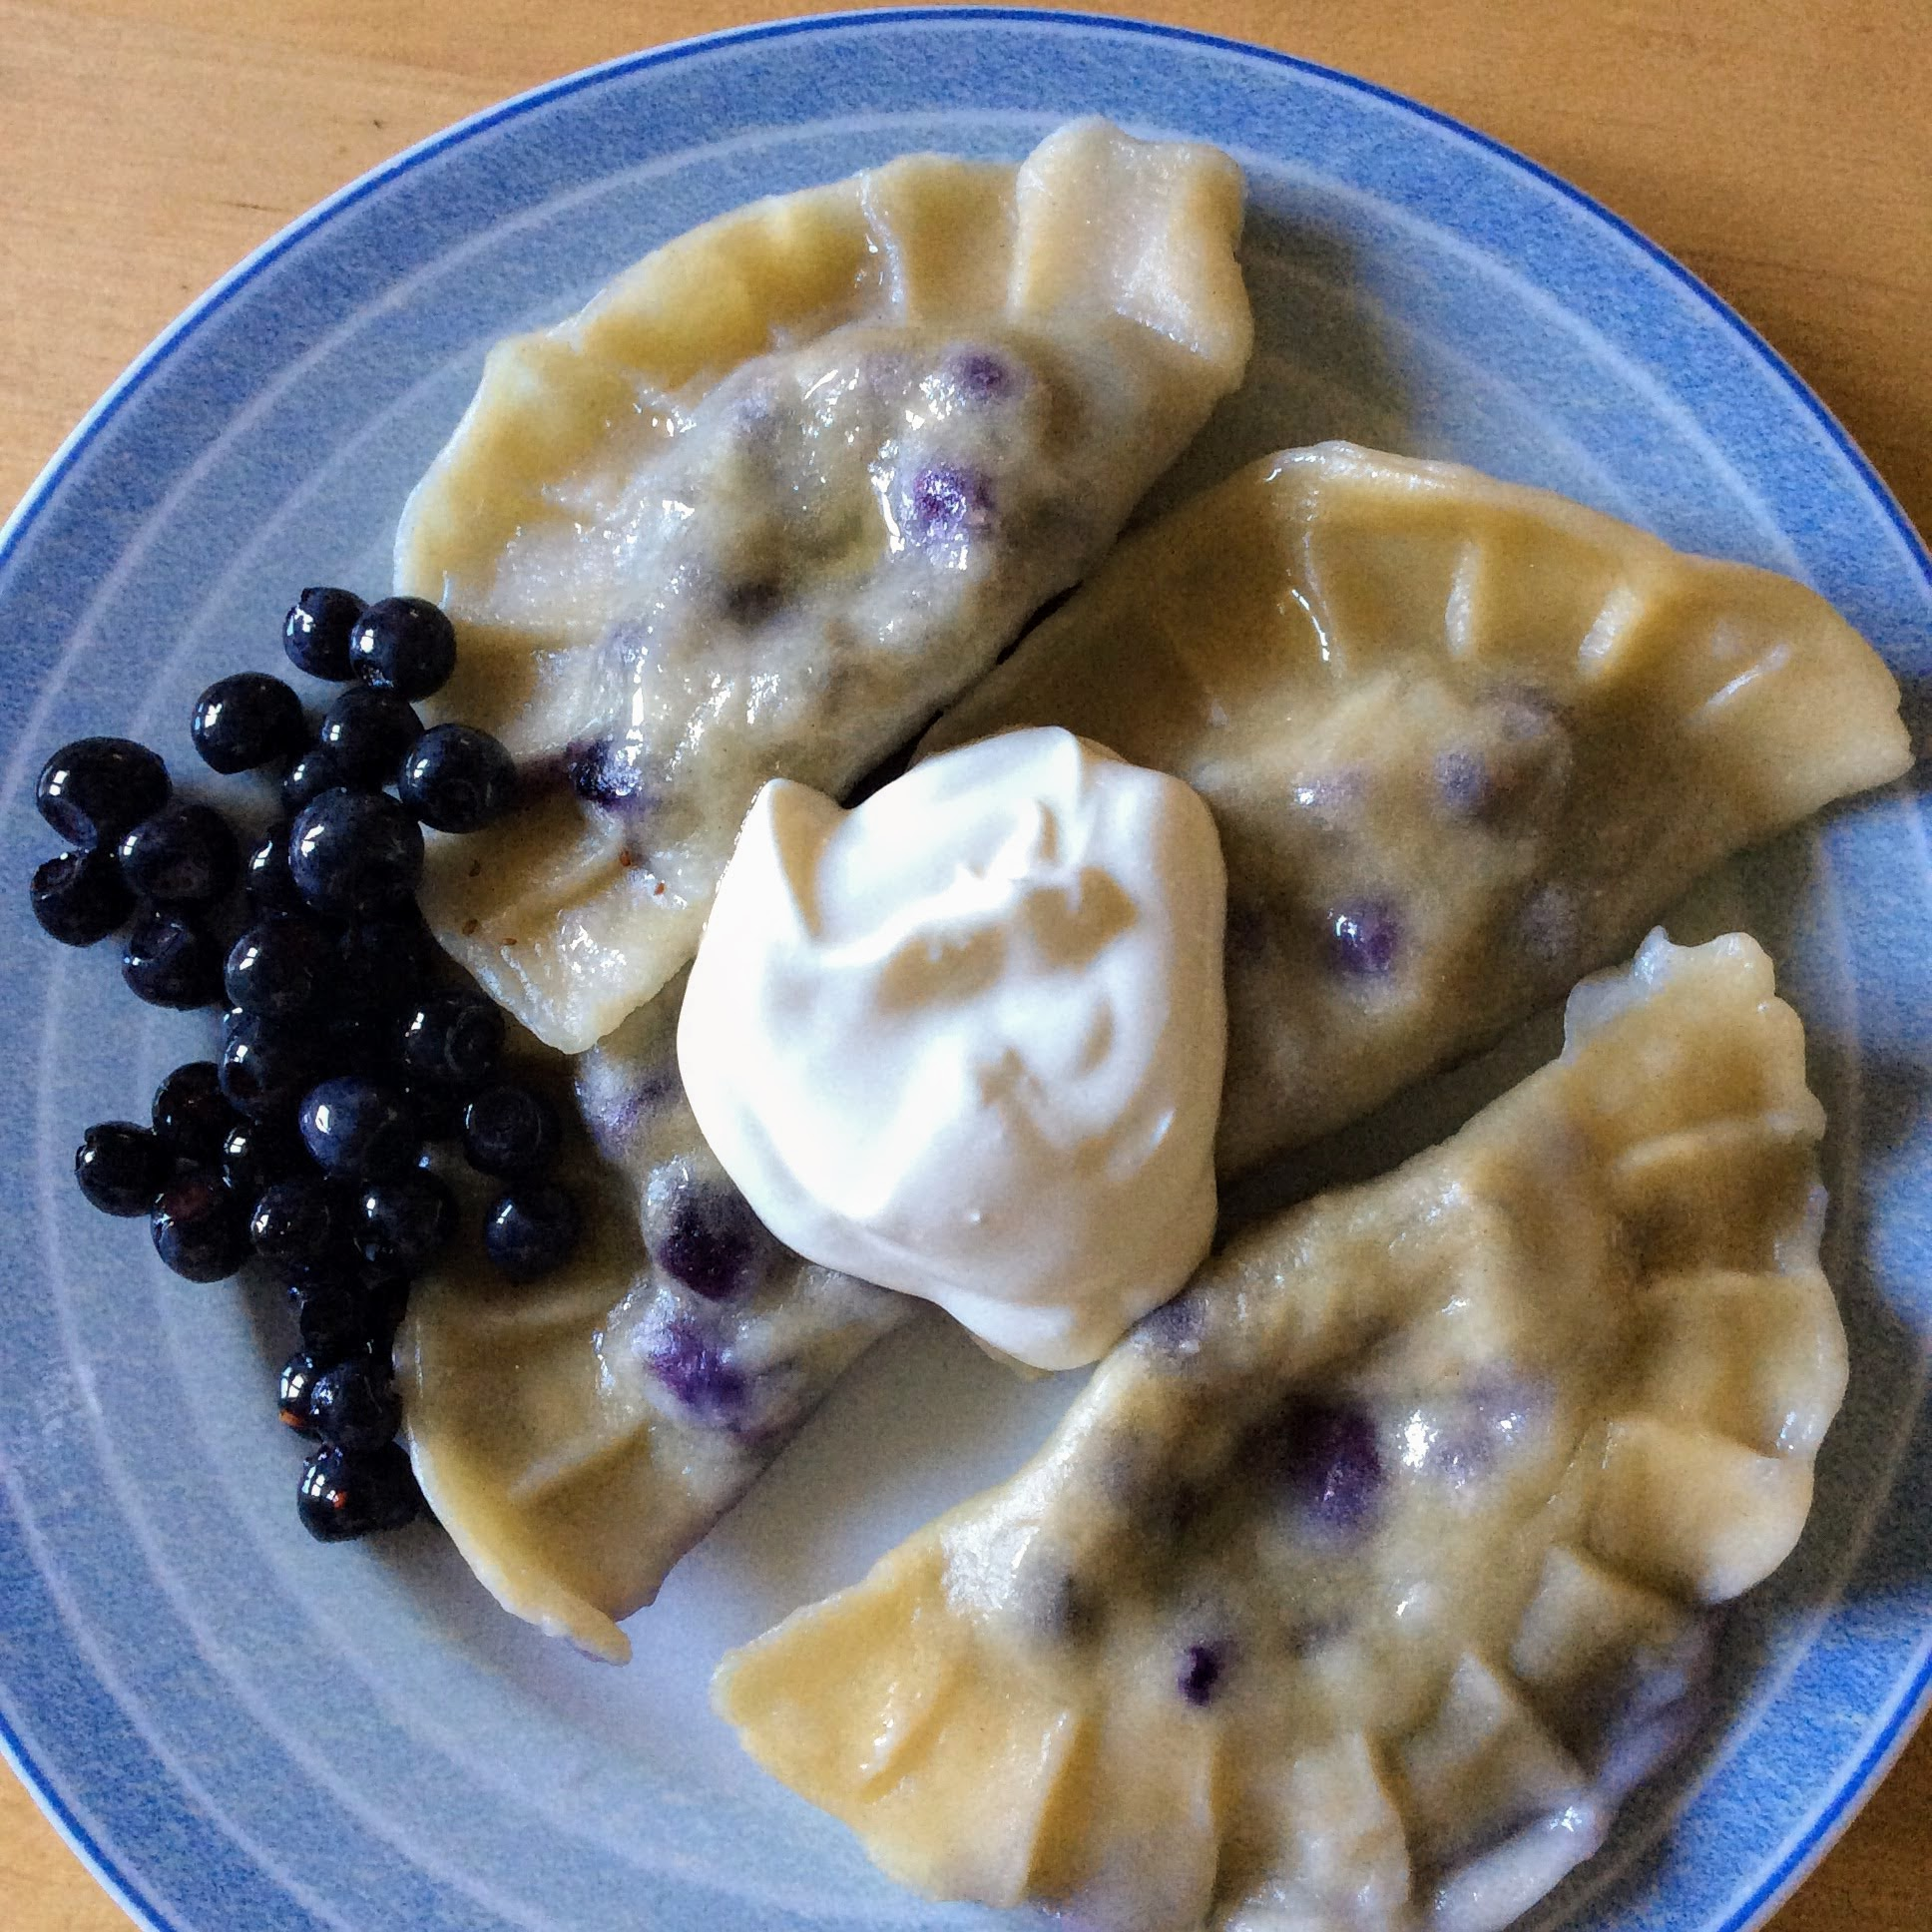 Plate of blueberry pierogi with a dollop of cream in the middle and blueberries on the left side